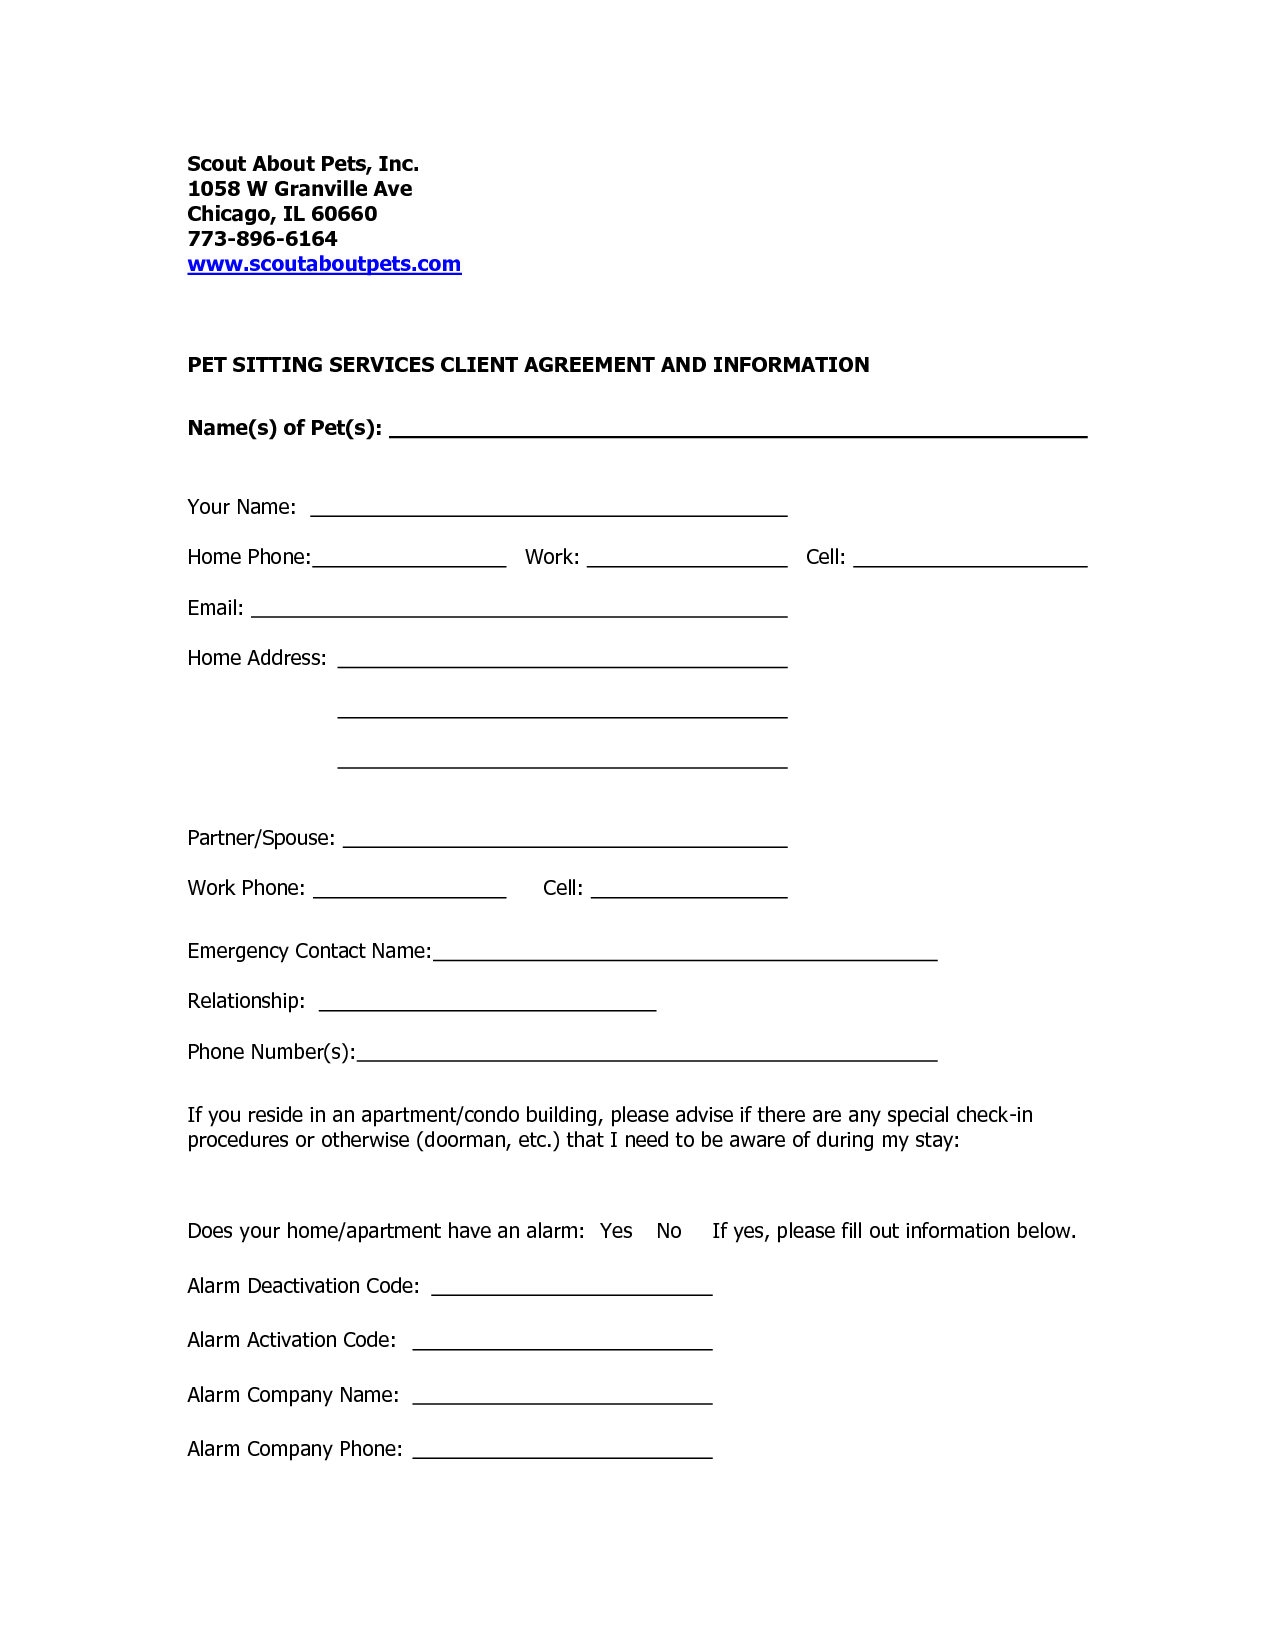 professional pet sitting forms template | Dog Sitting Form   Scout